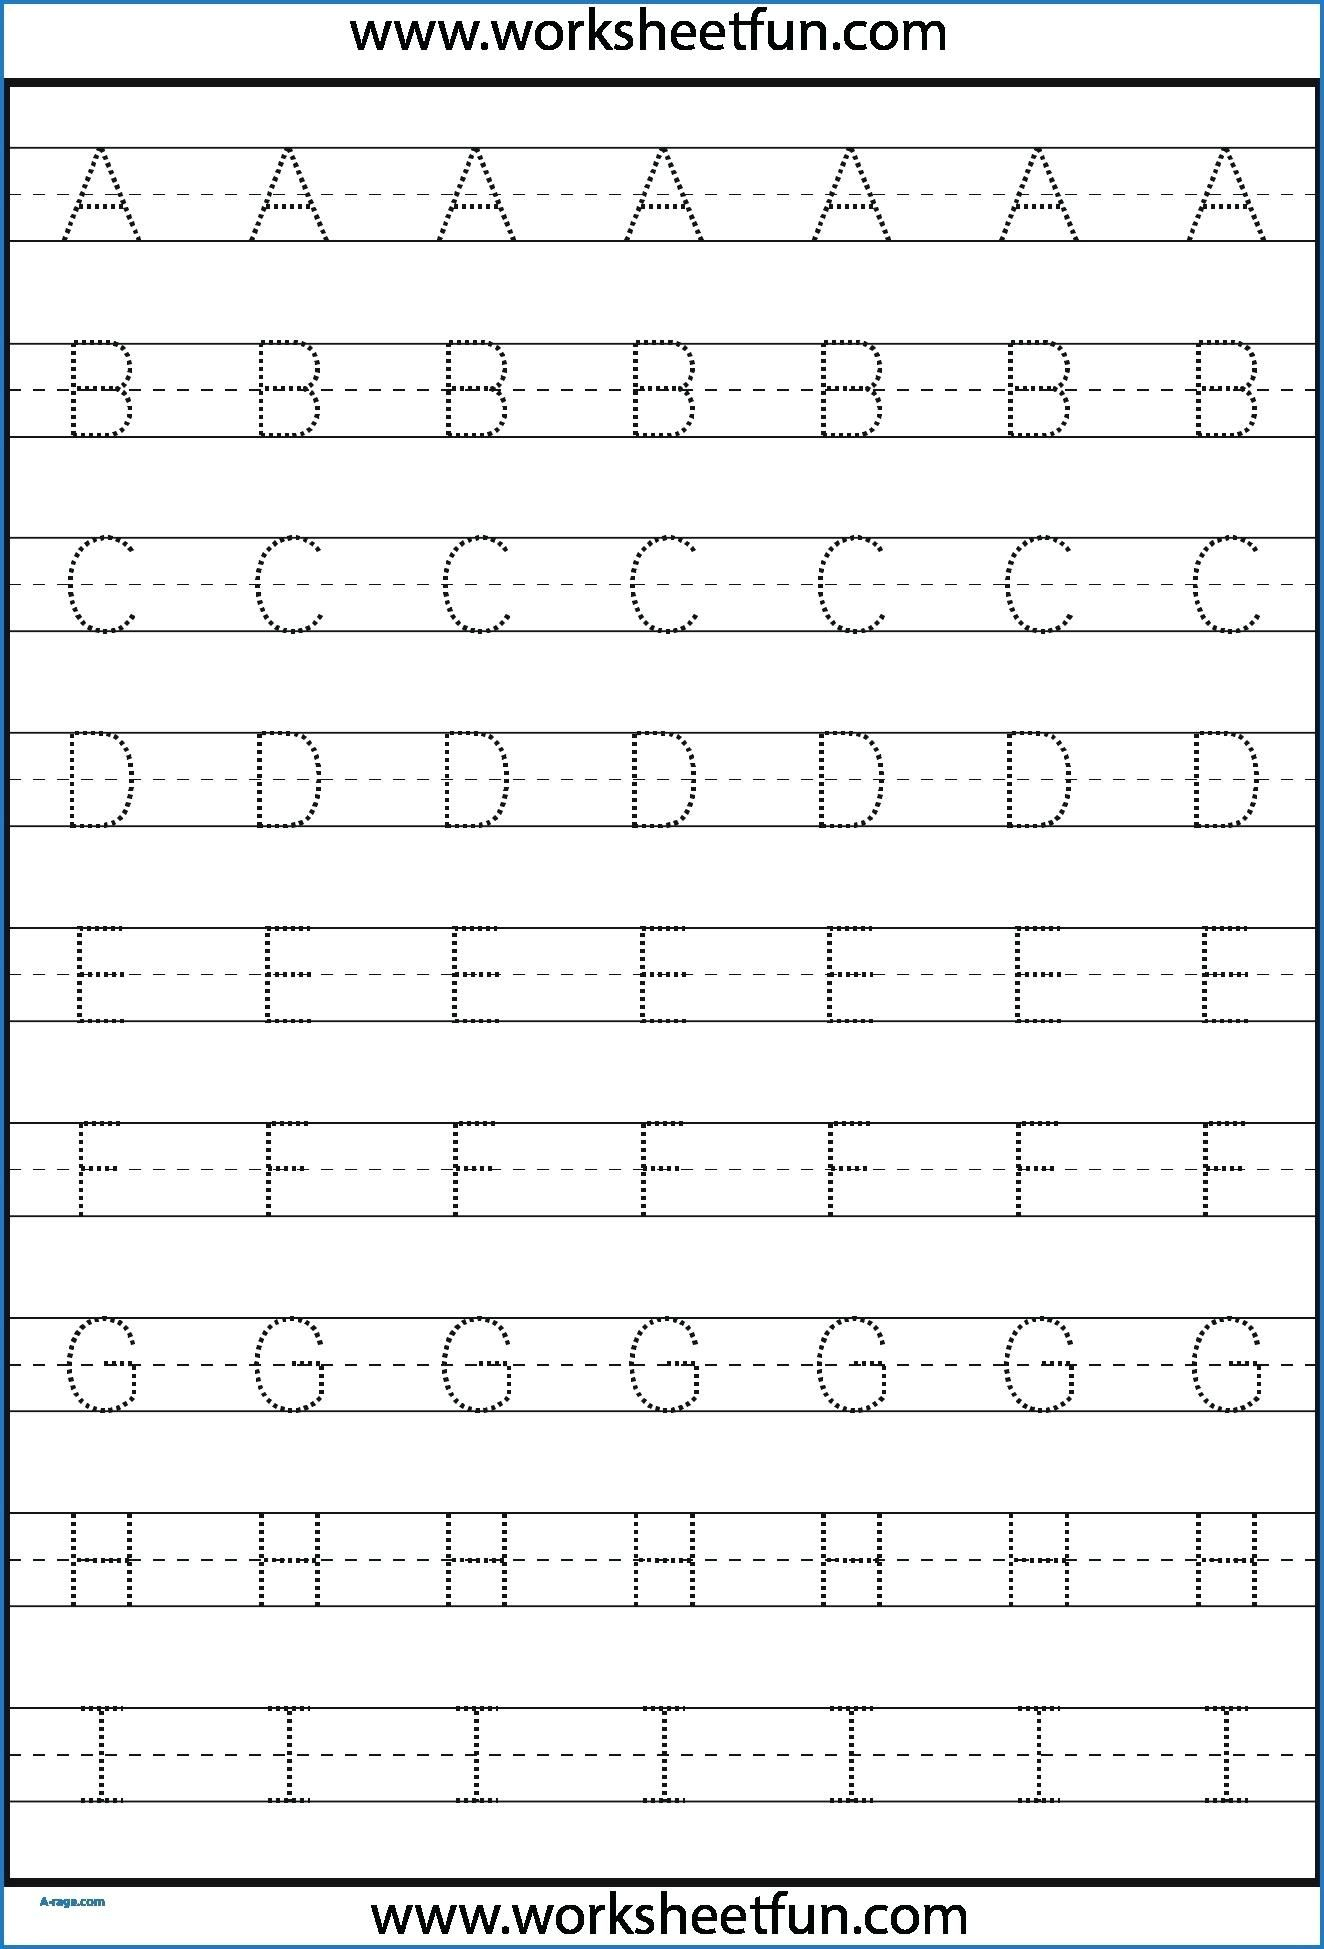 Kindergarten Letter Tracing Worksheets Pdf - Wallpaper Image with regard to Tracing Letters For Kindergarten Sheets